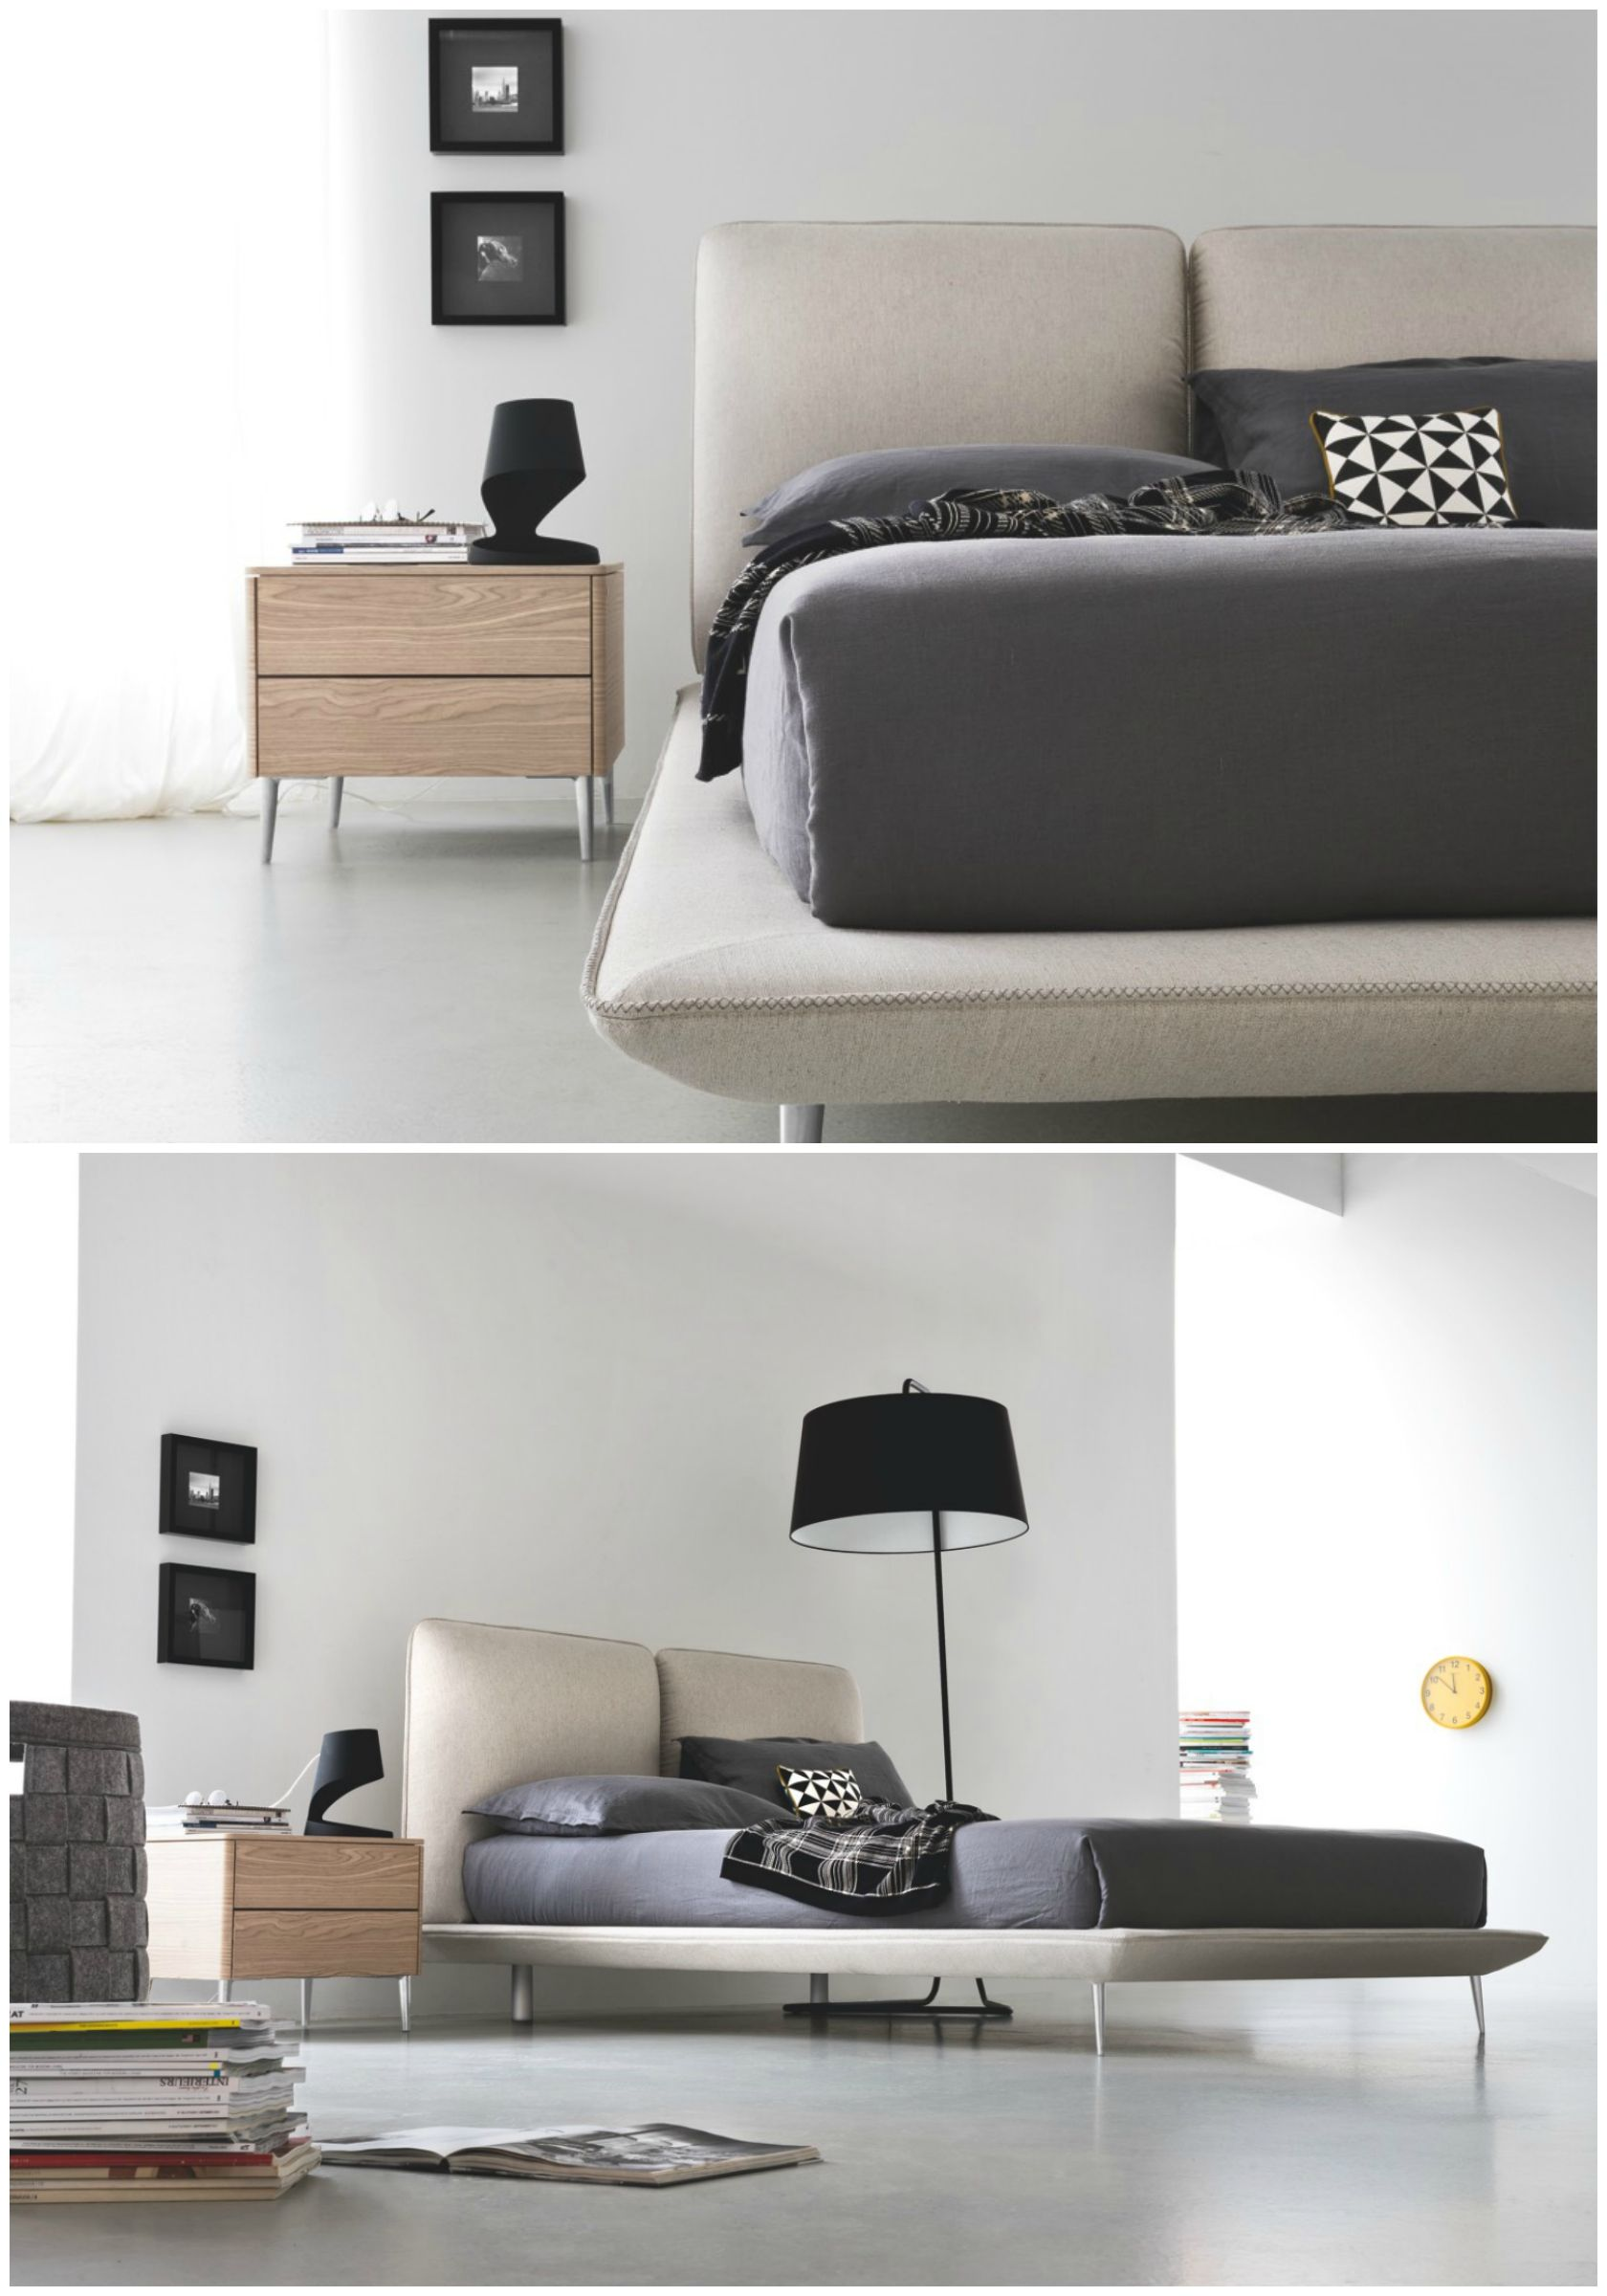 Featuring a divided upholstered headboard, TAYLOR King or